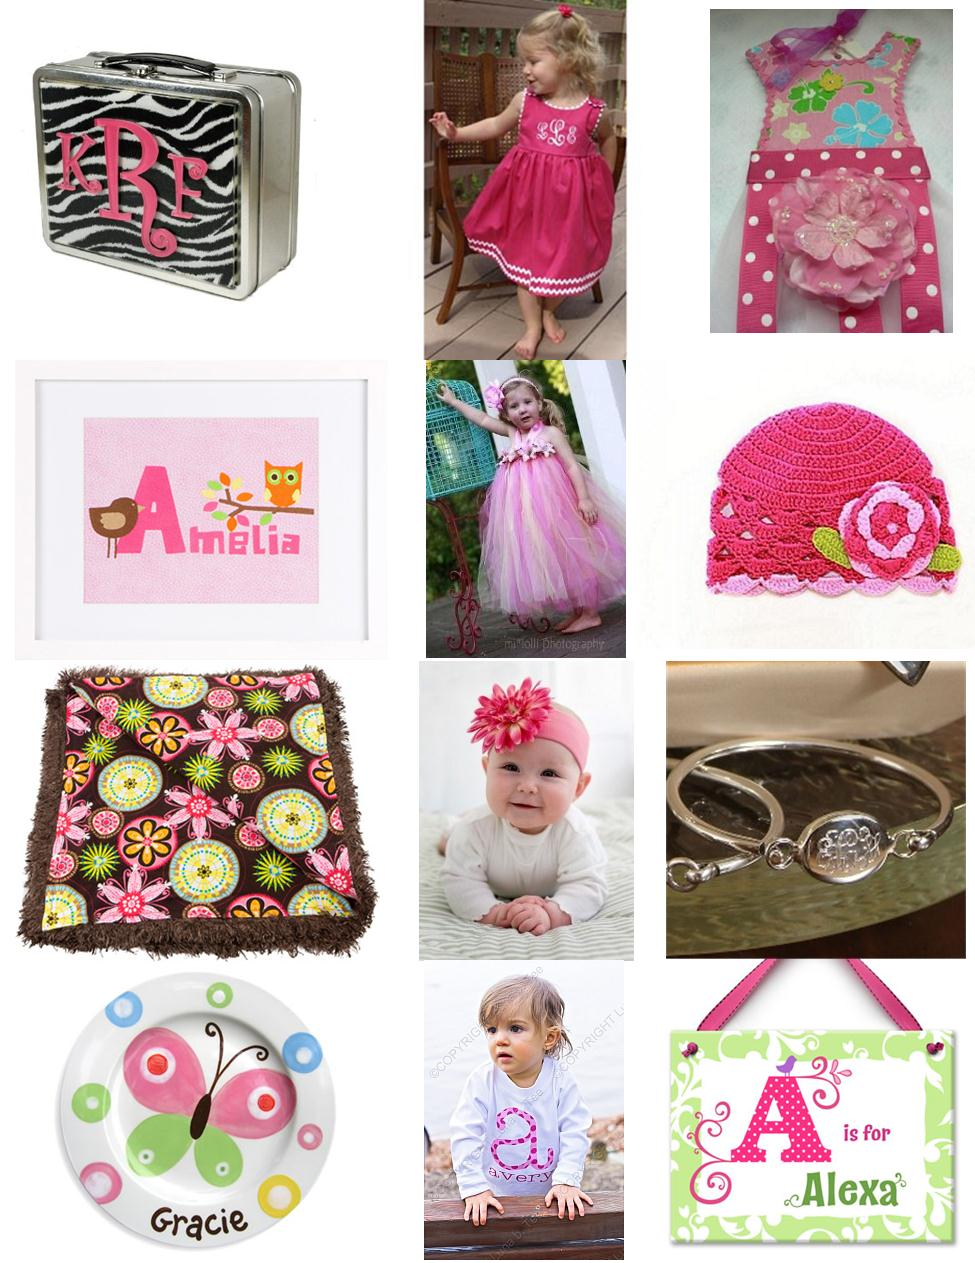 sophisticated stationery christmas gift ideas for little girls - Christmas Ideas For Girls